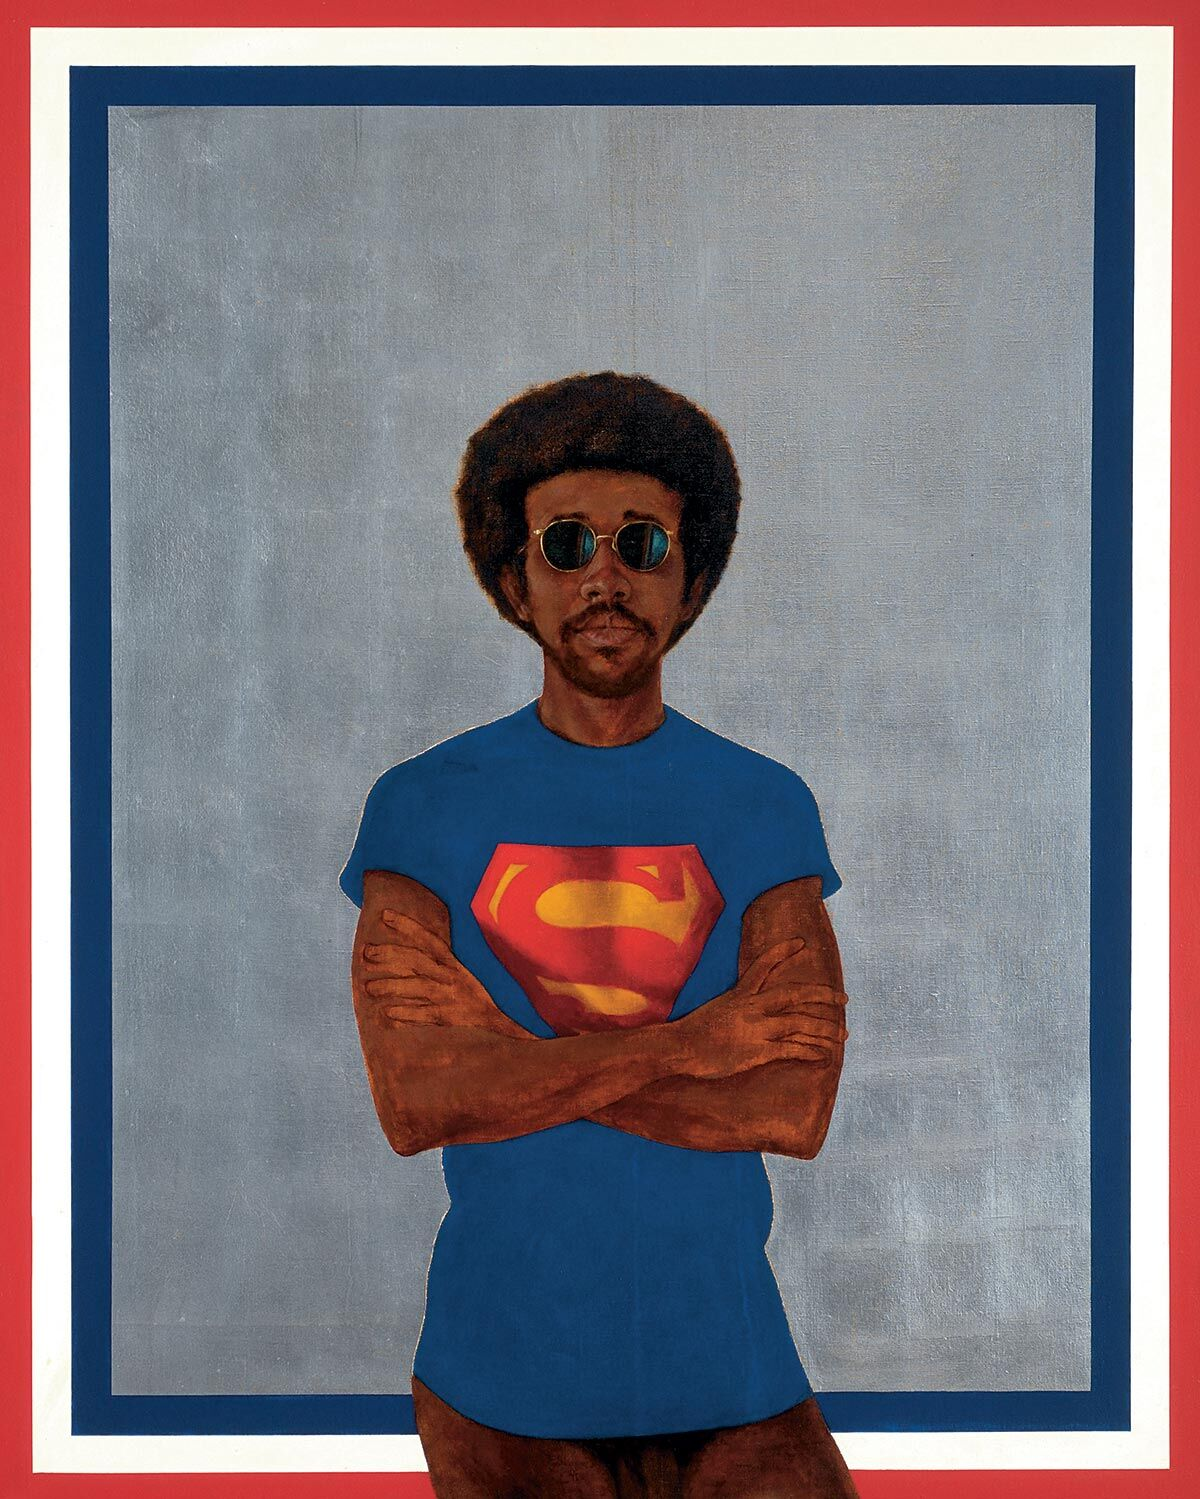 Barkley L. Hendricks, Icon for my Man Superman (Superman Never Saved Any Black People-Bobby Seale), 1969. © Estate of Barkley L. Hendricks. Courtesy of the artist's estate and Jack Shainman Gallery, New York.